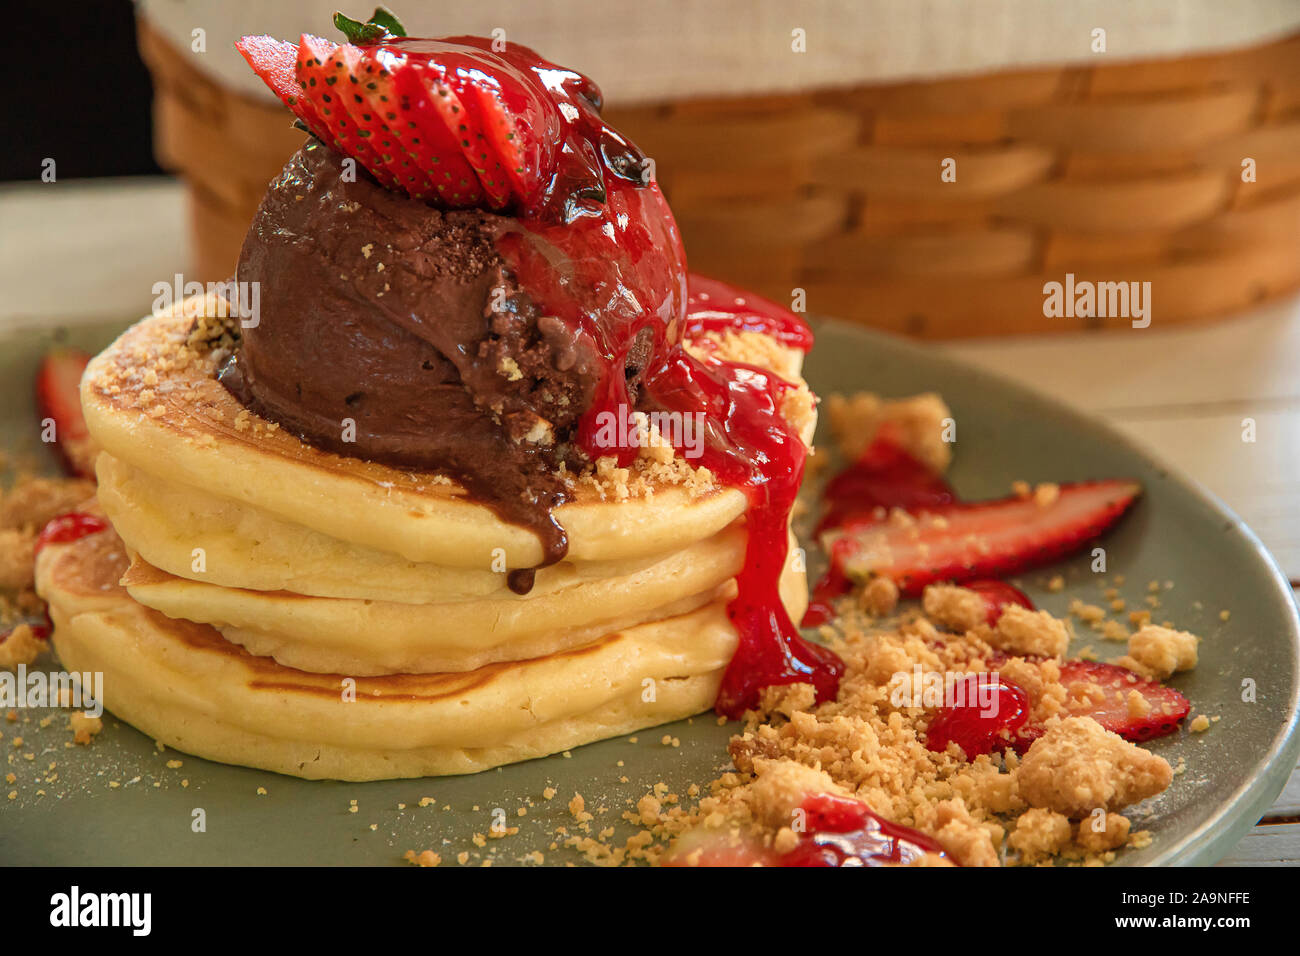 Chocolate Ice Cream On A Pancake With Strawberry Jam On Top Stock Photo Alamy